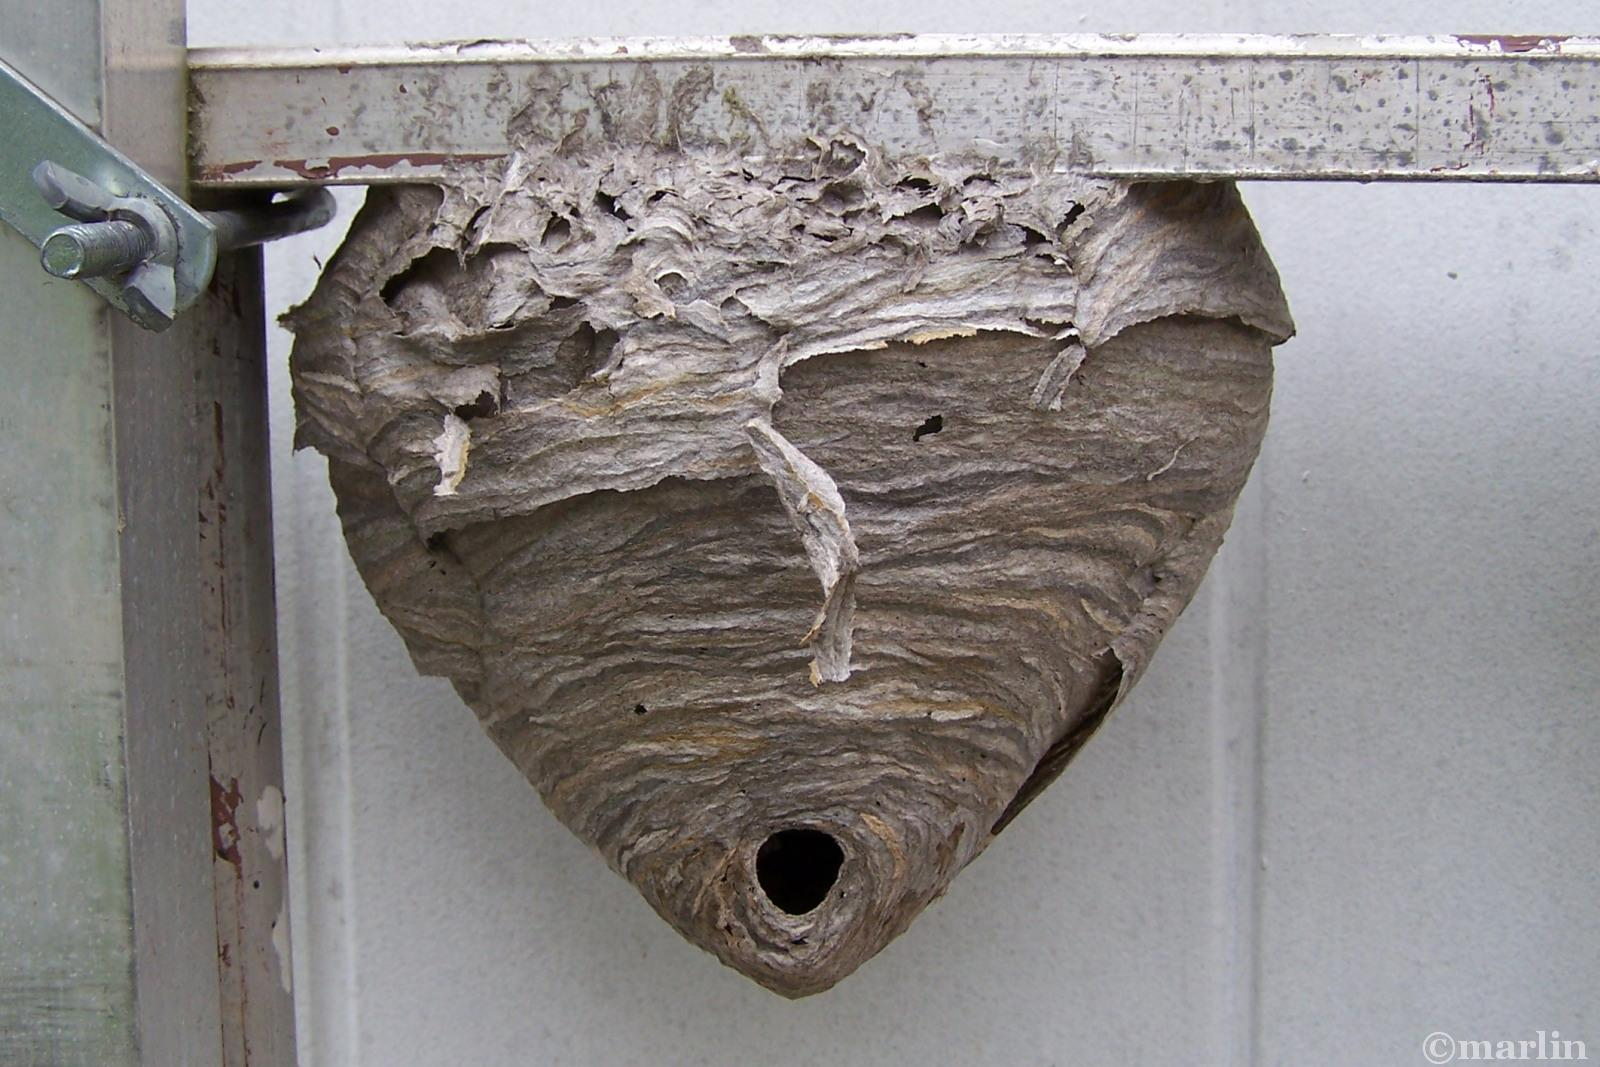 bald-faced-hornet-nest